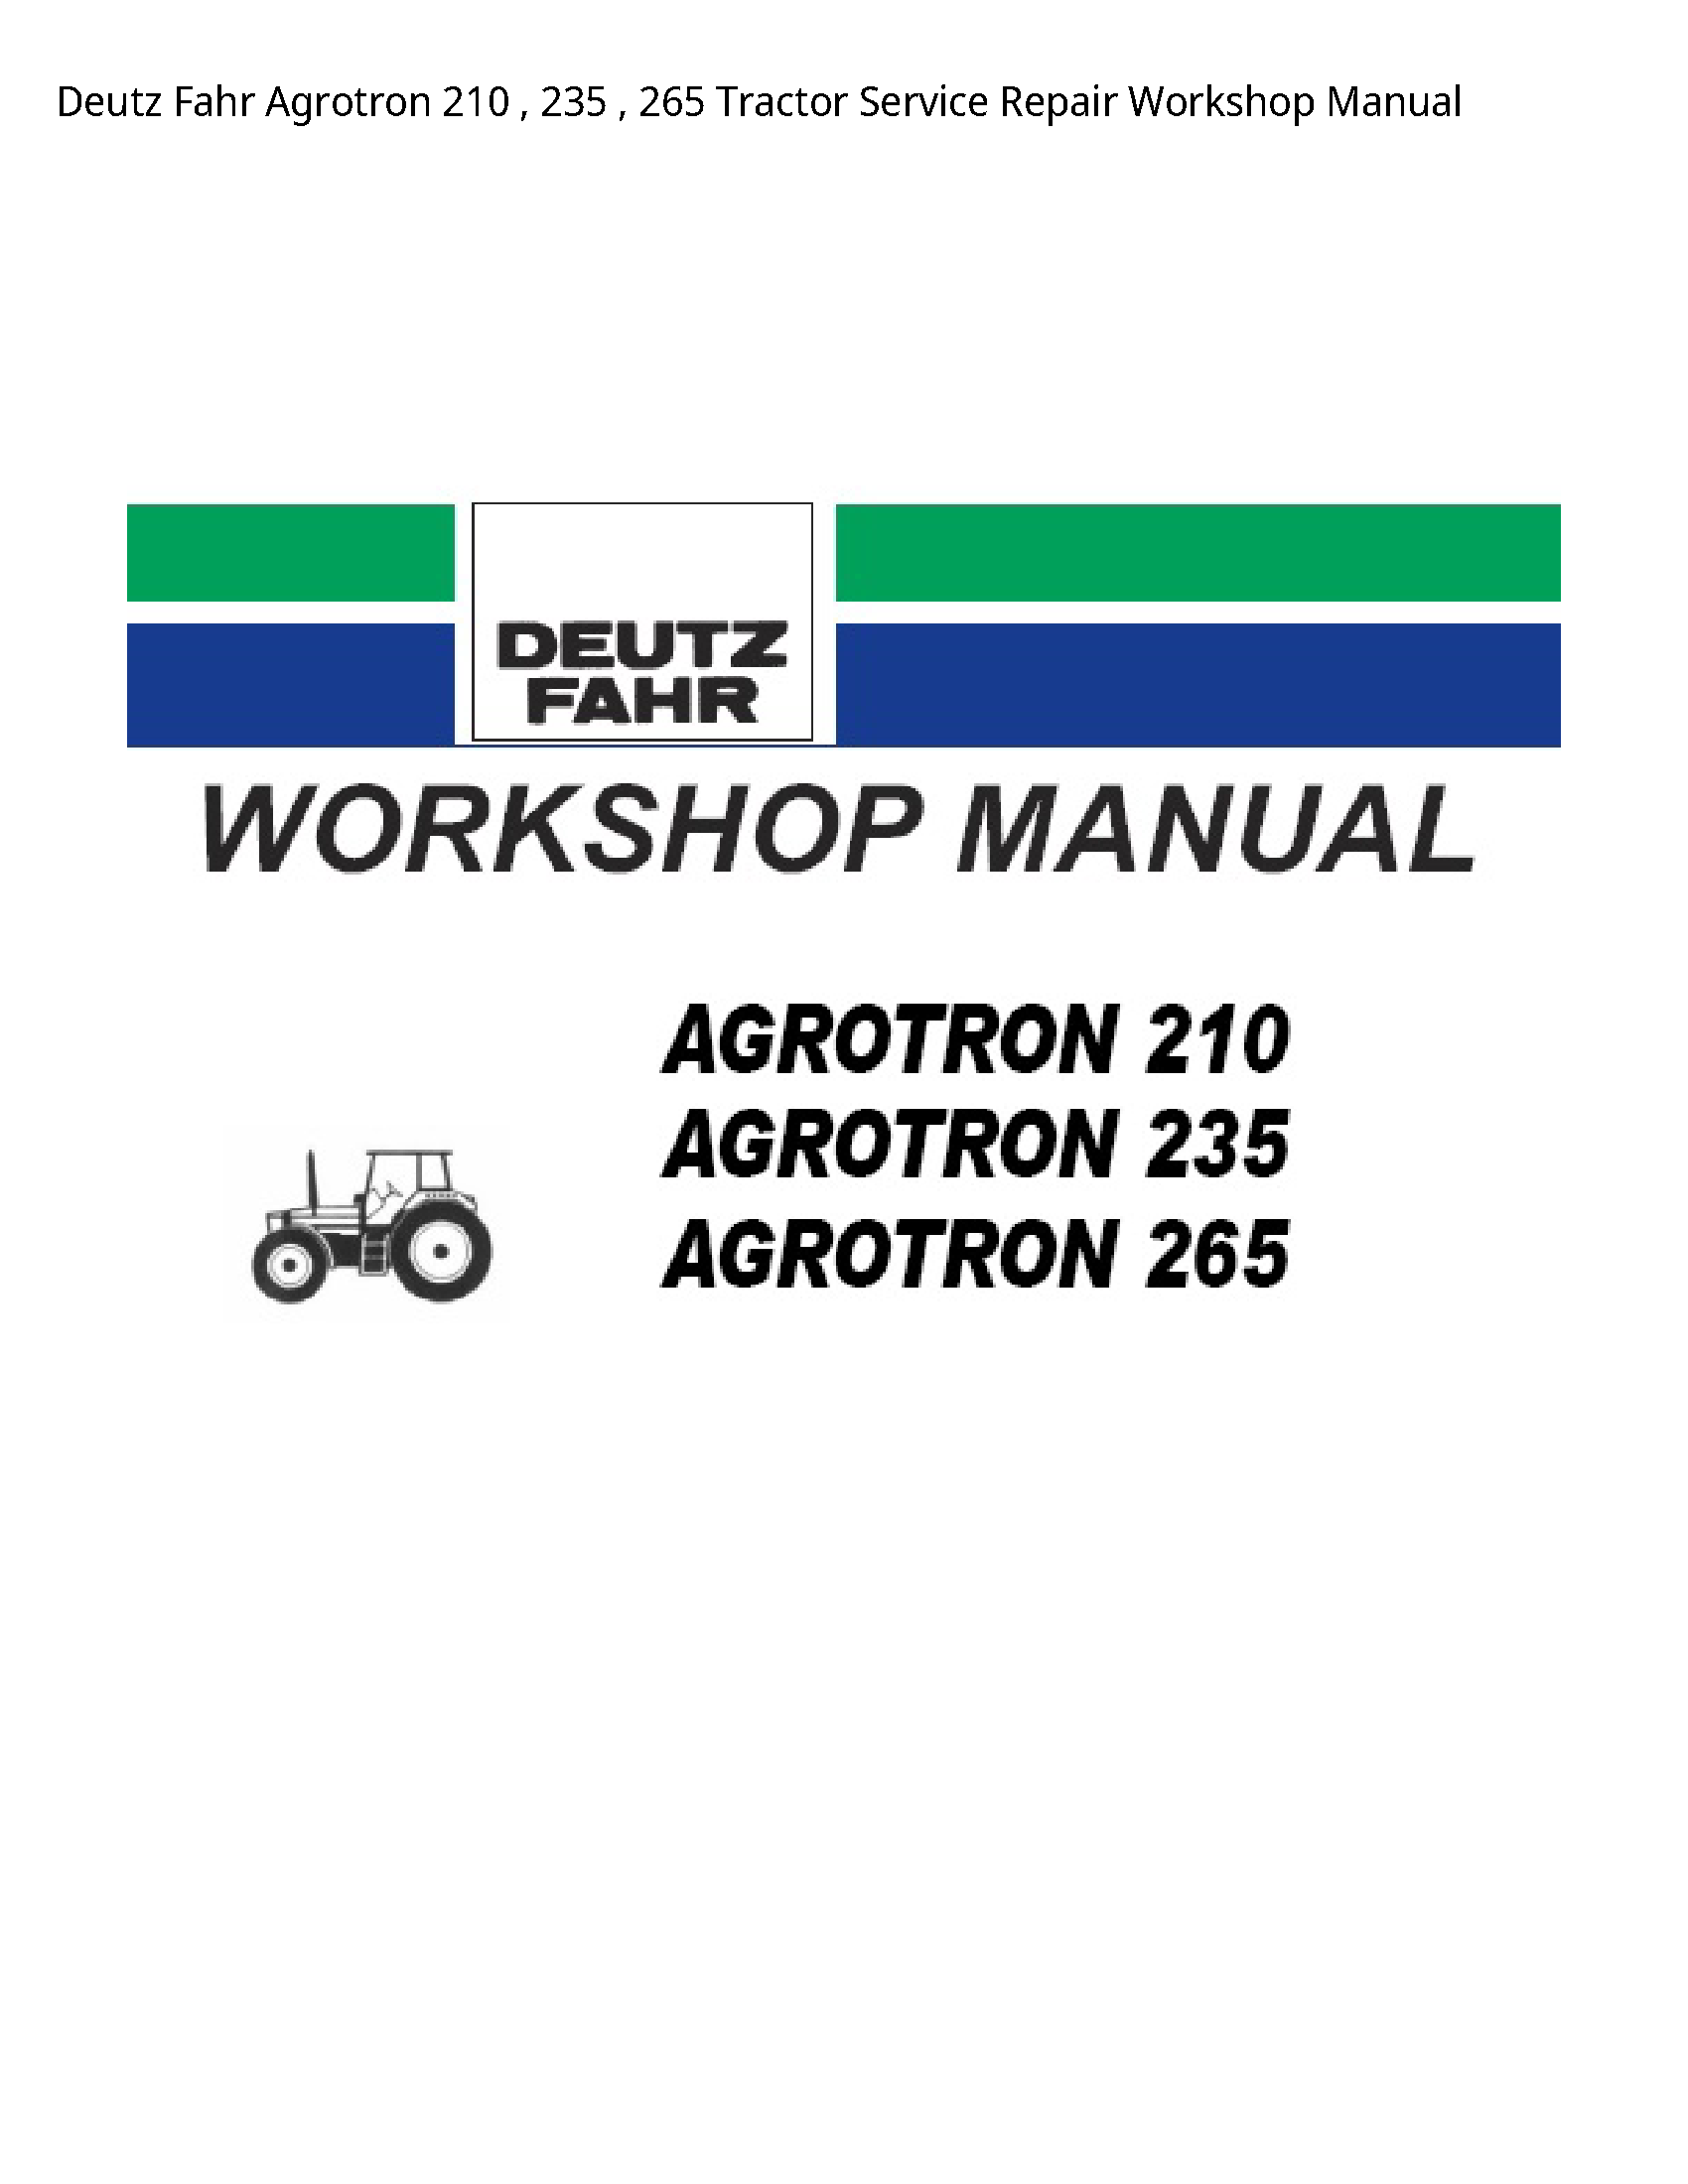 Deutz 210 Fahr Agrotron Tractor manual